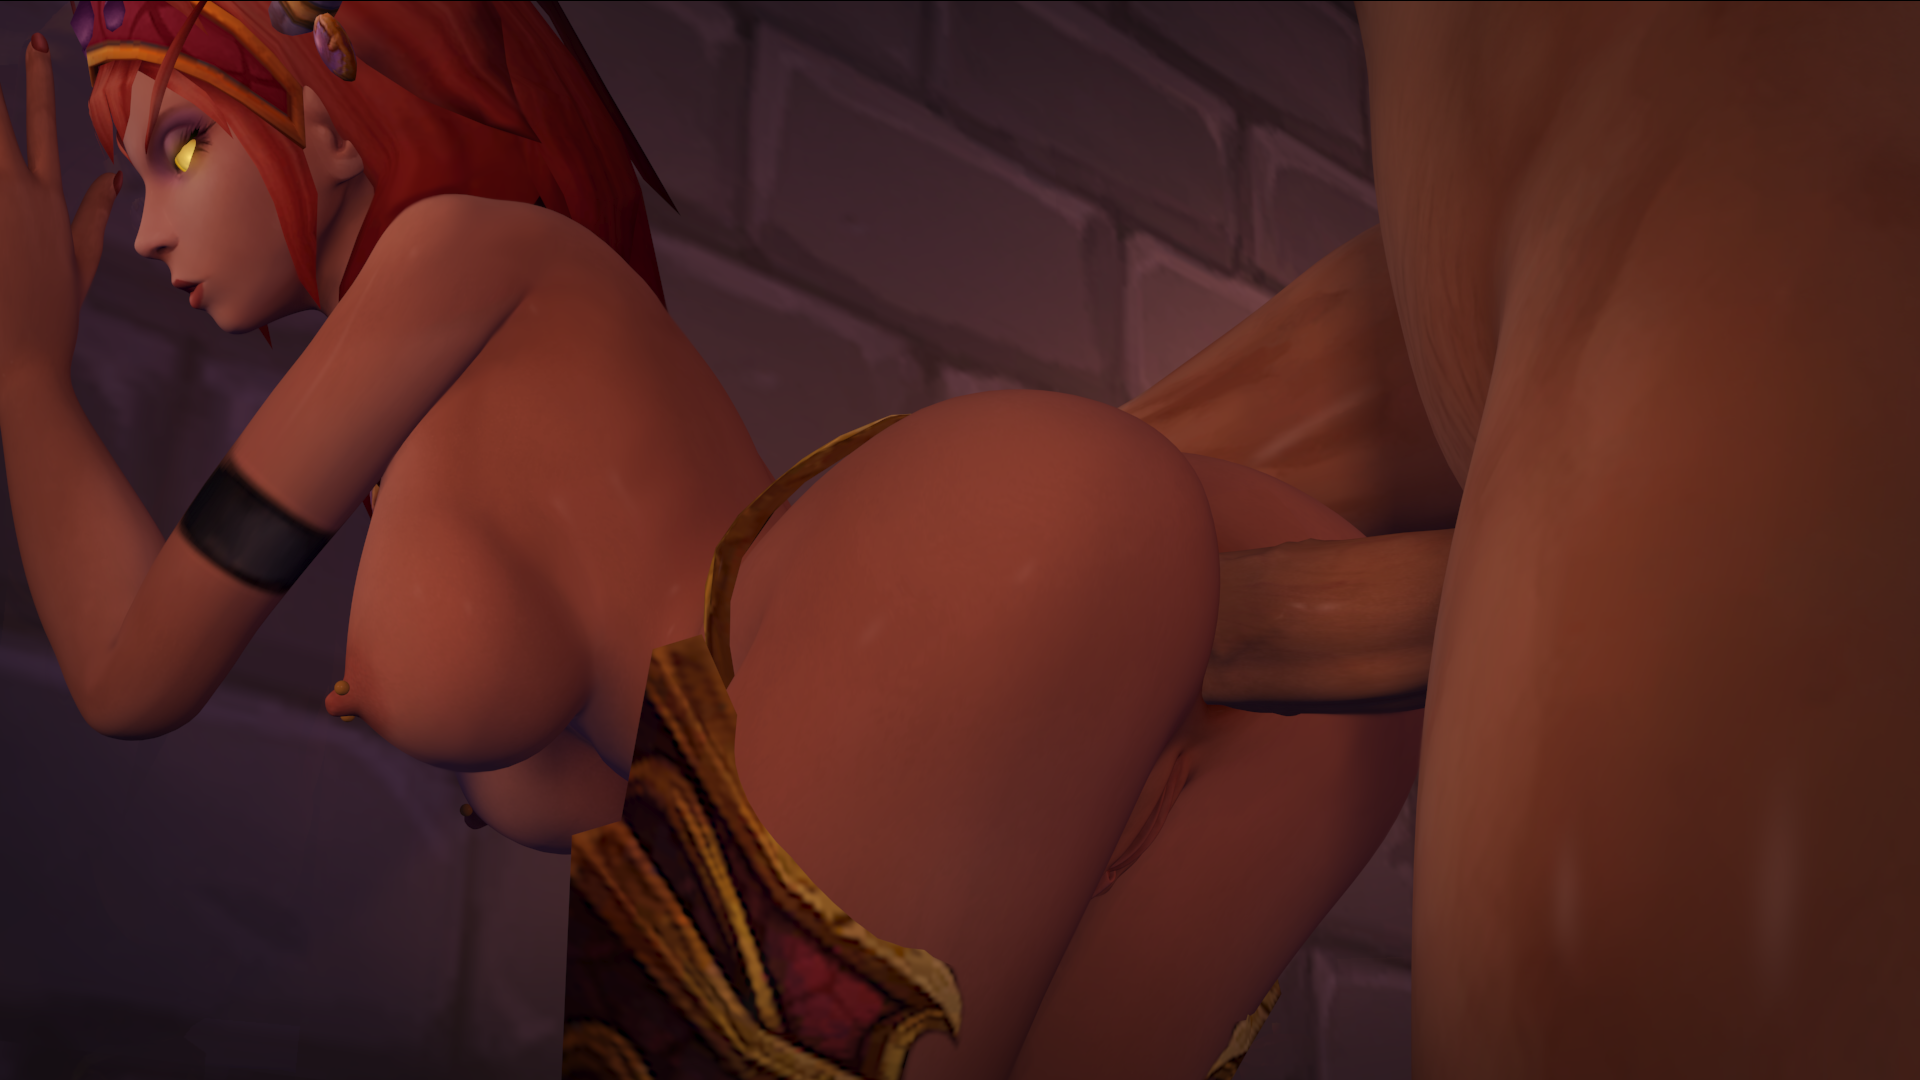 Warcraft xxx alexstrasza sex movie